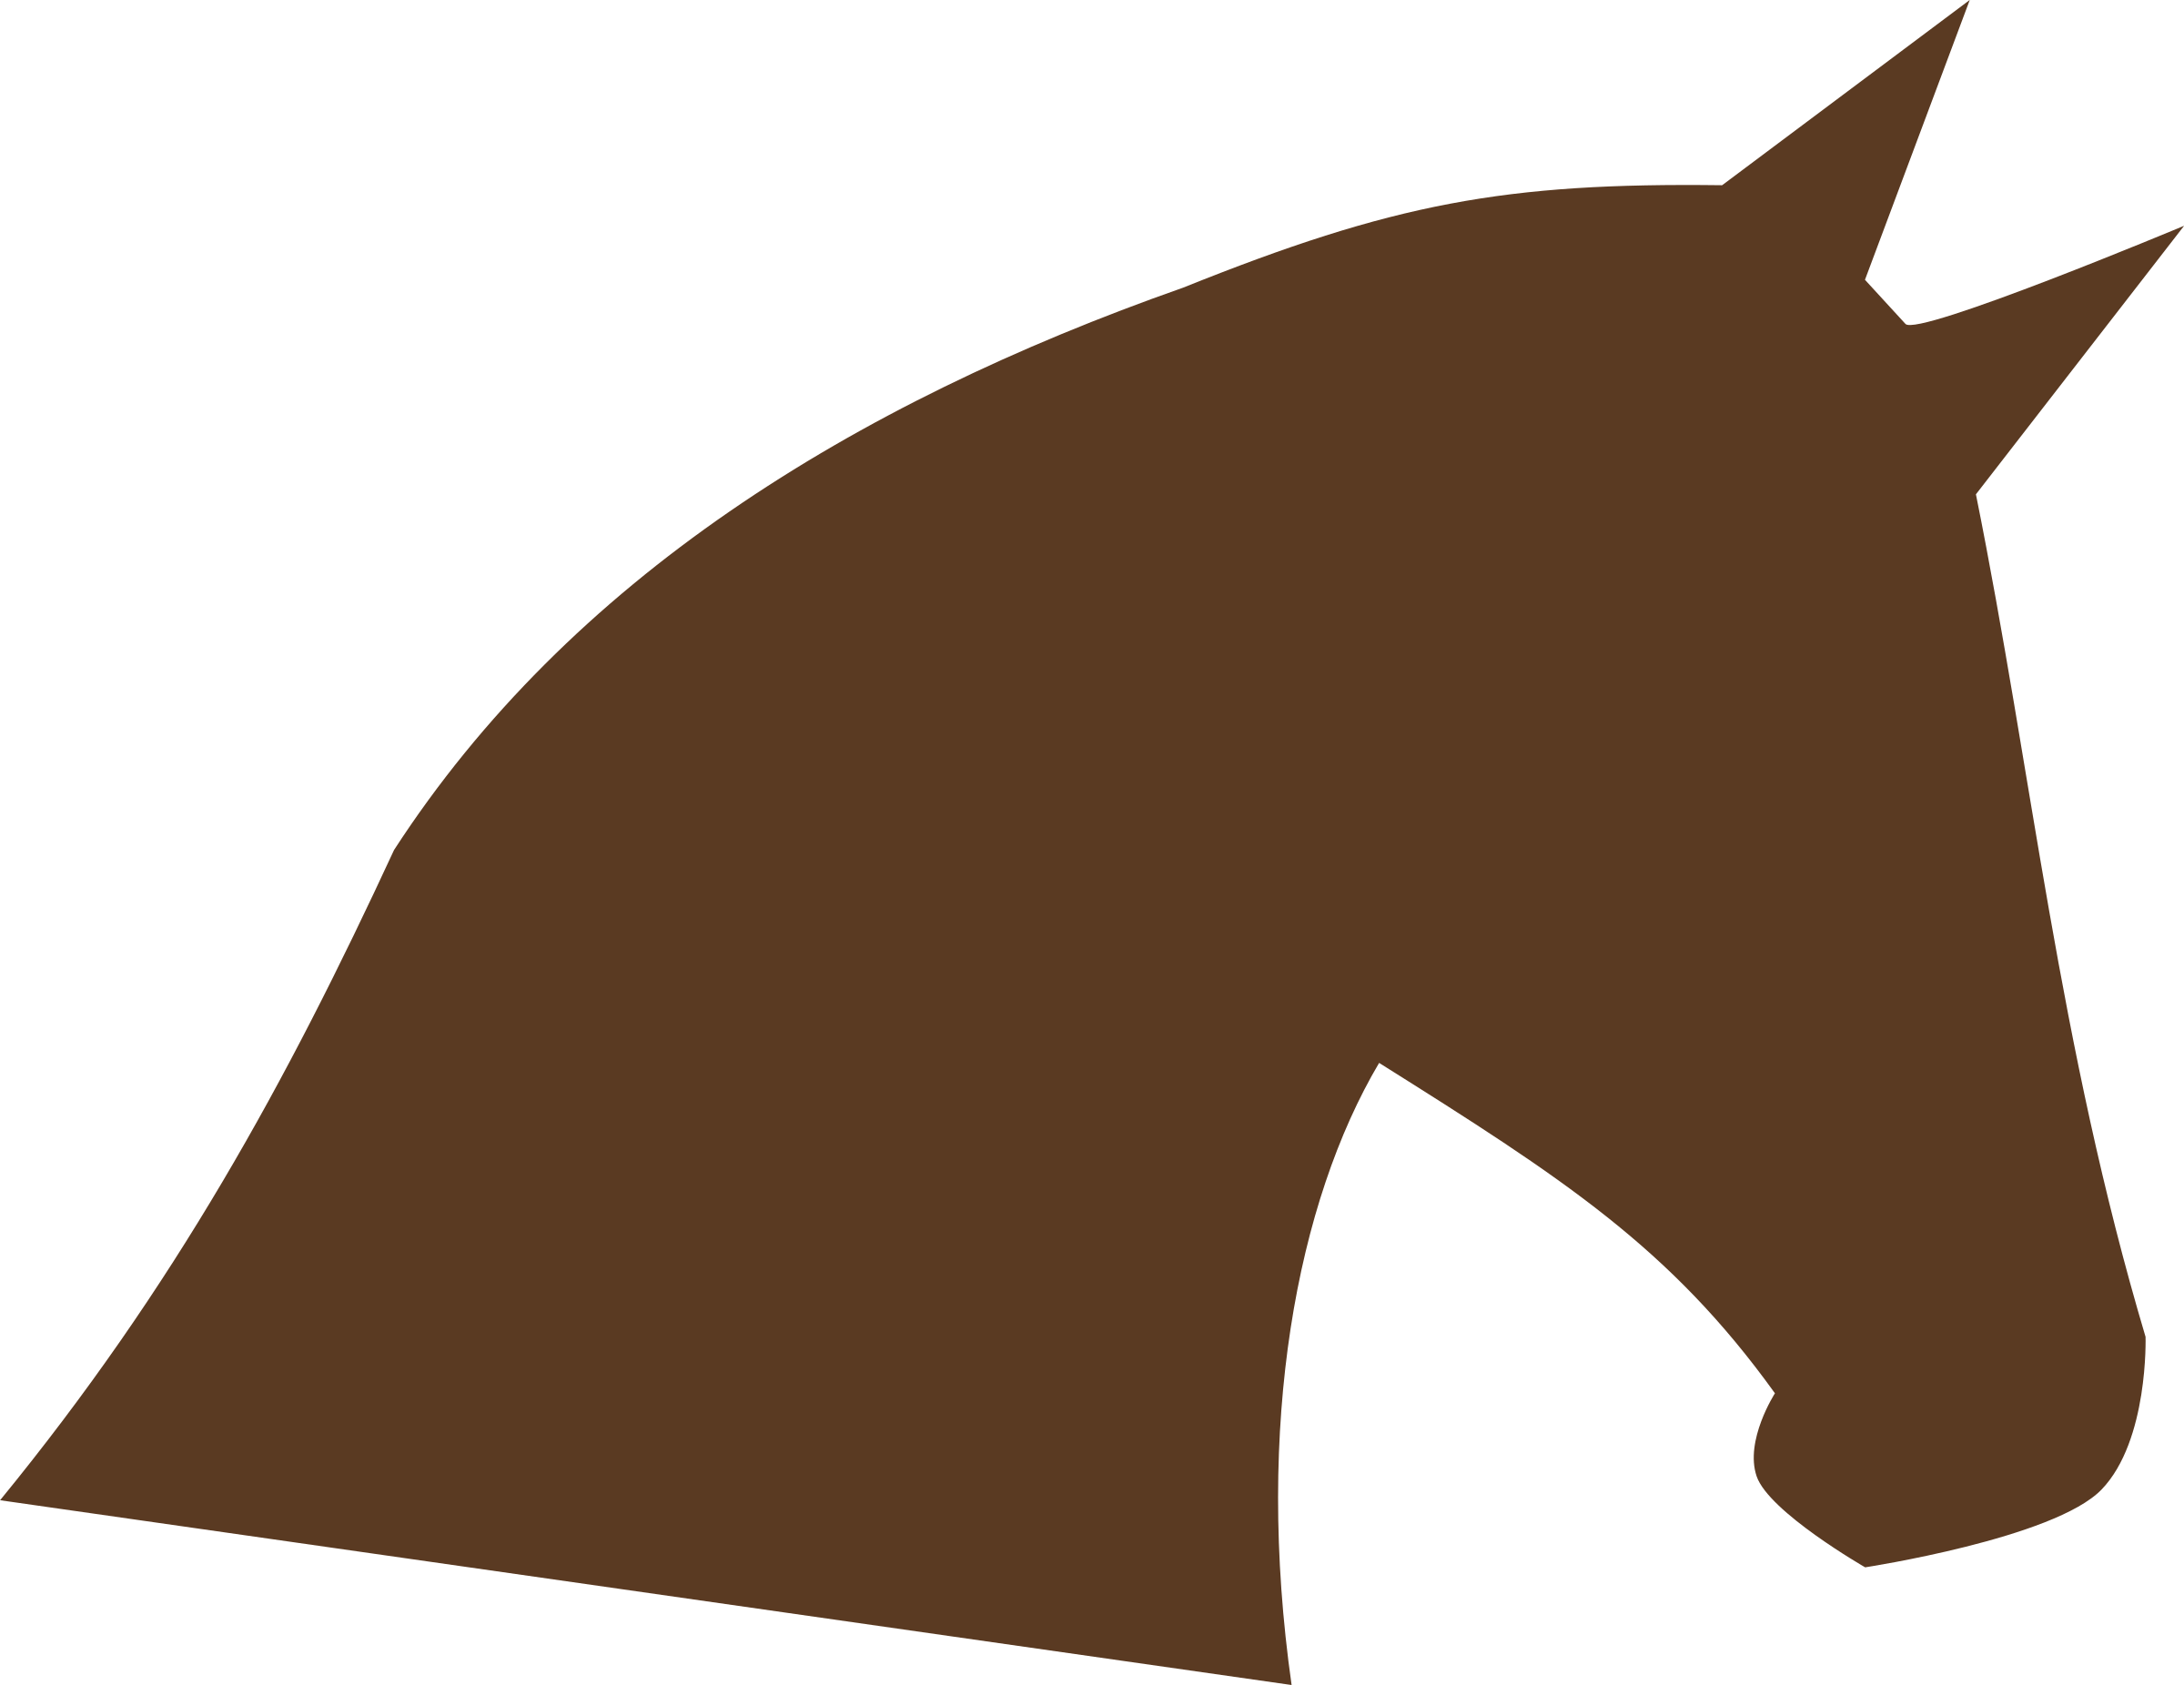 png library Brother clipart tete. T te de cheval